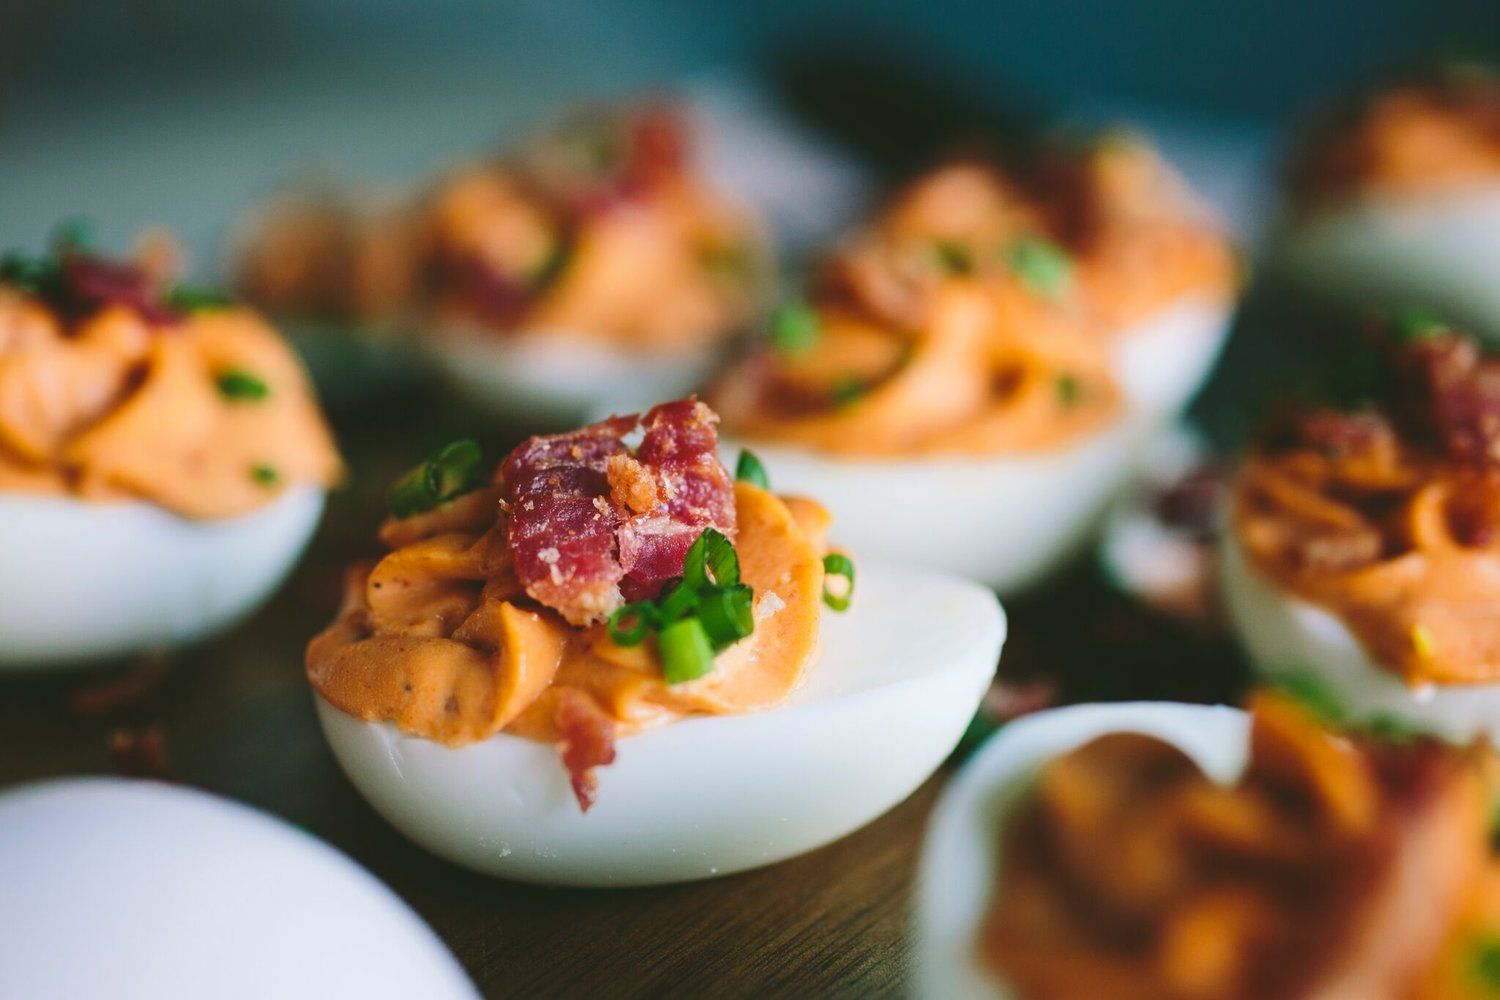 Bacon Sriracha Deviled Eggs With Images Sriracha Deviled Eggs